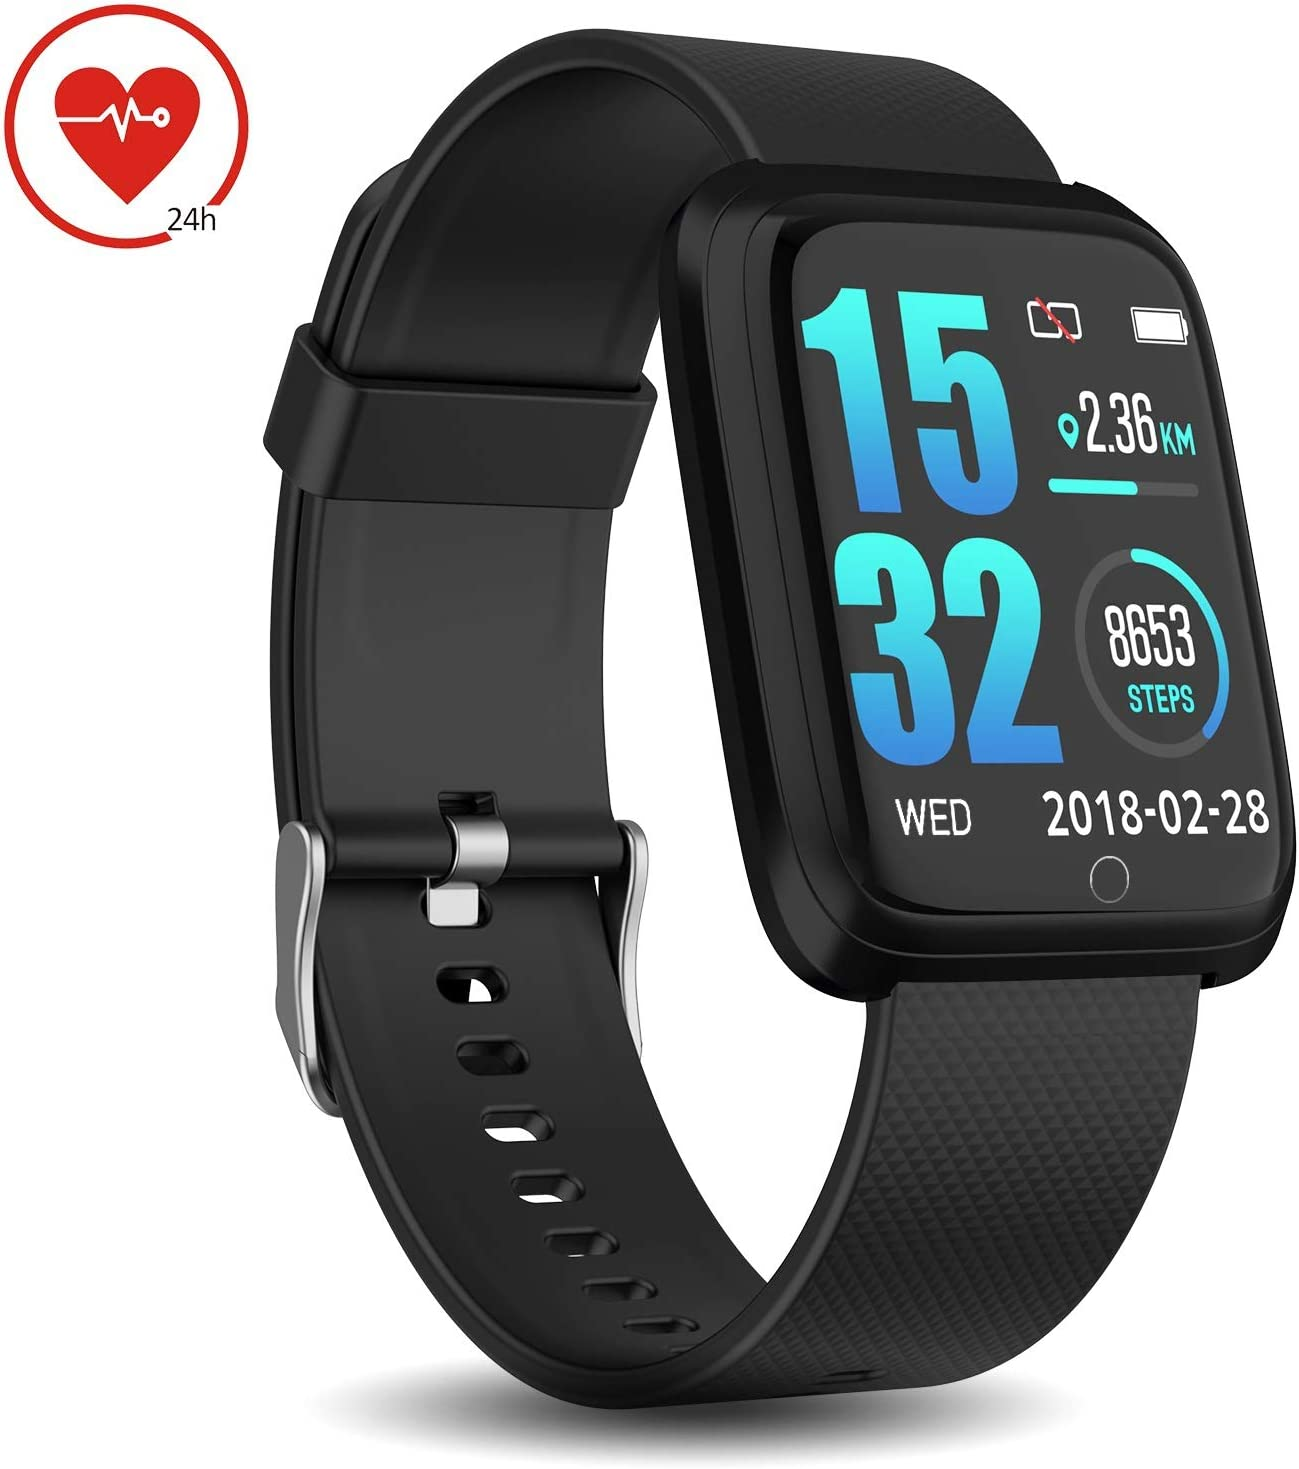 DoSmarter Fitness Tracker with Heart Rate Monitor, Waterproof Pedometer Running Watch with Step Counter, Sleep Monitor, Calorie Counter Compatible ...